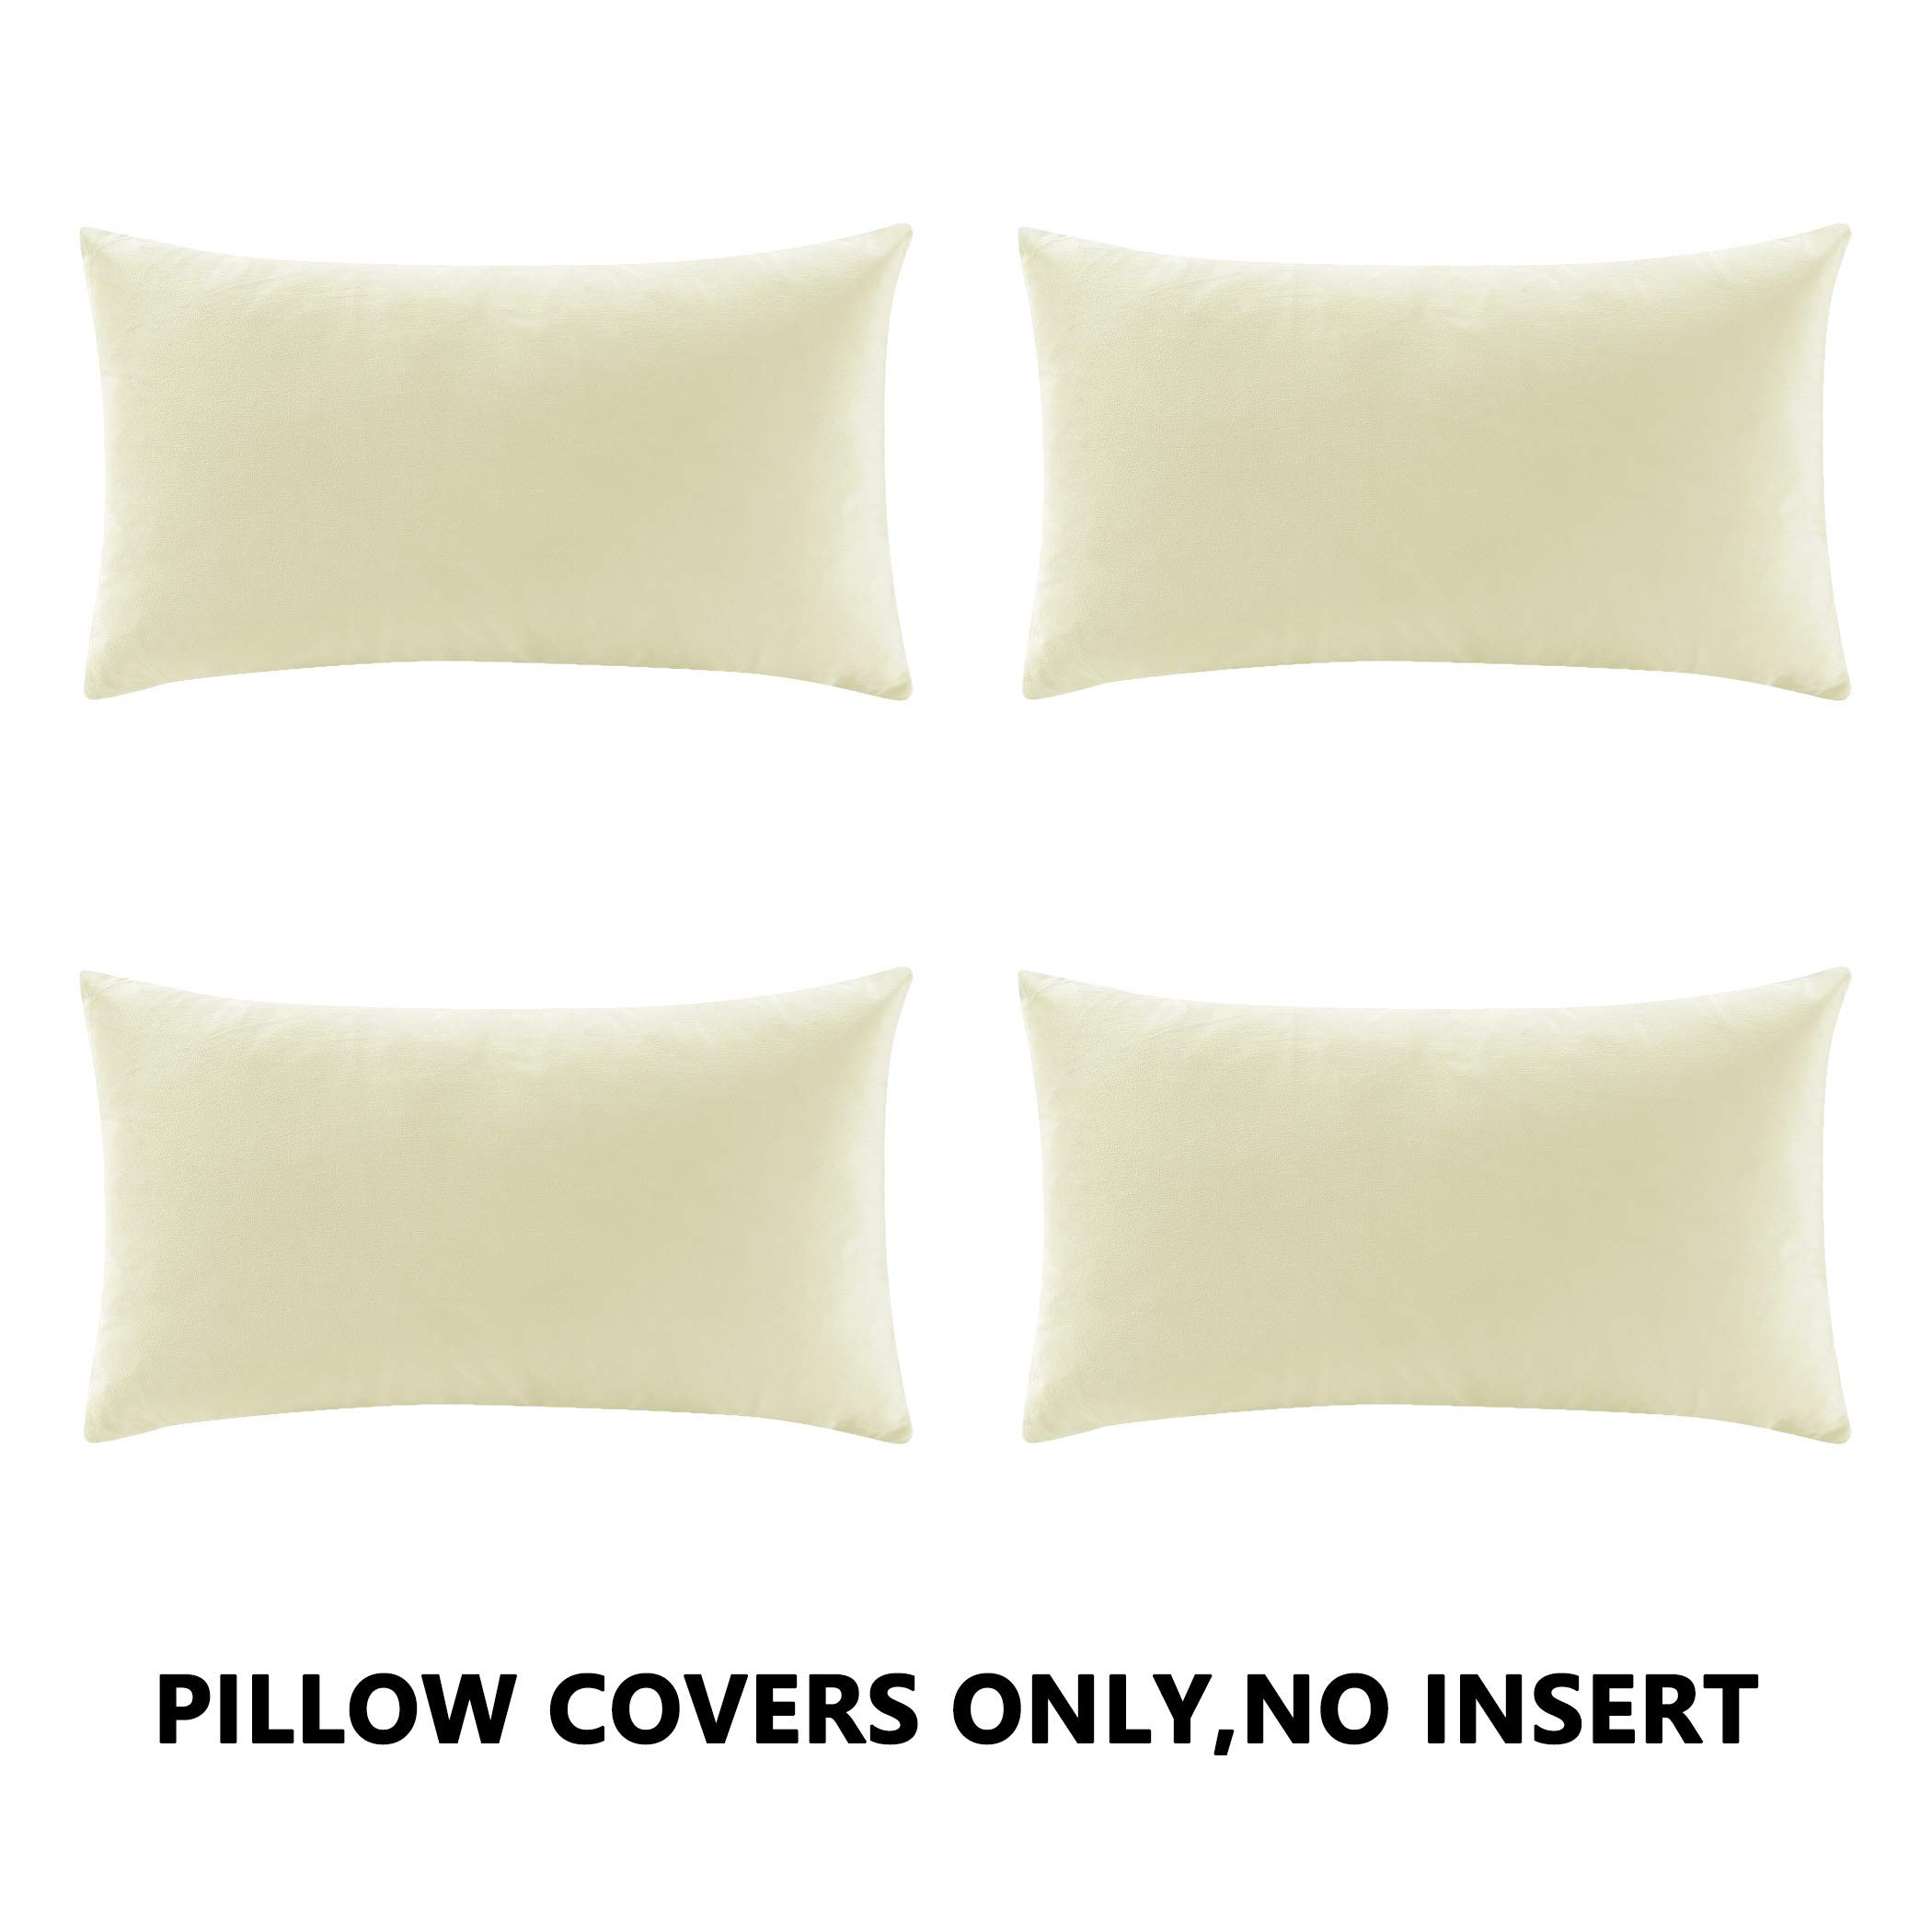 COMFORTLAND New Year/Christmas Decorative Pillow Covers 12x20 Off White: 4 Pack Cozy Soft Velvet Rectangular Throw Pillow Cases for Farmhouse Sofa Couch Bed Chair Home Decor Decorations